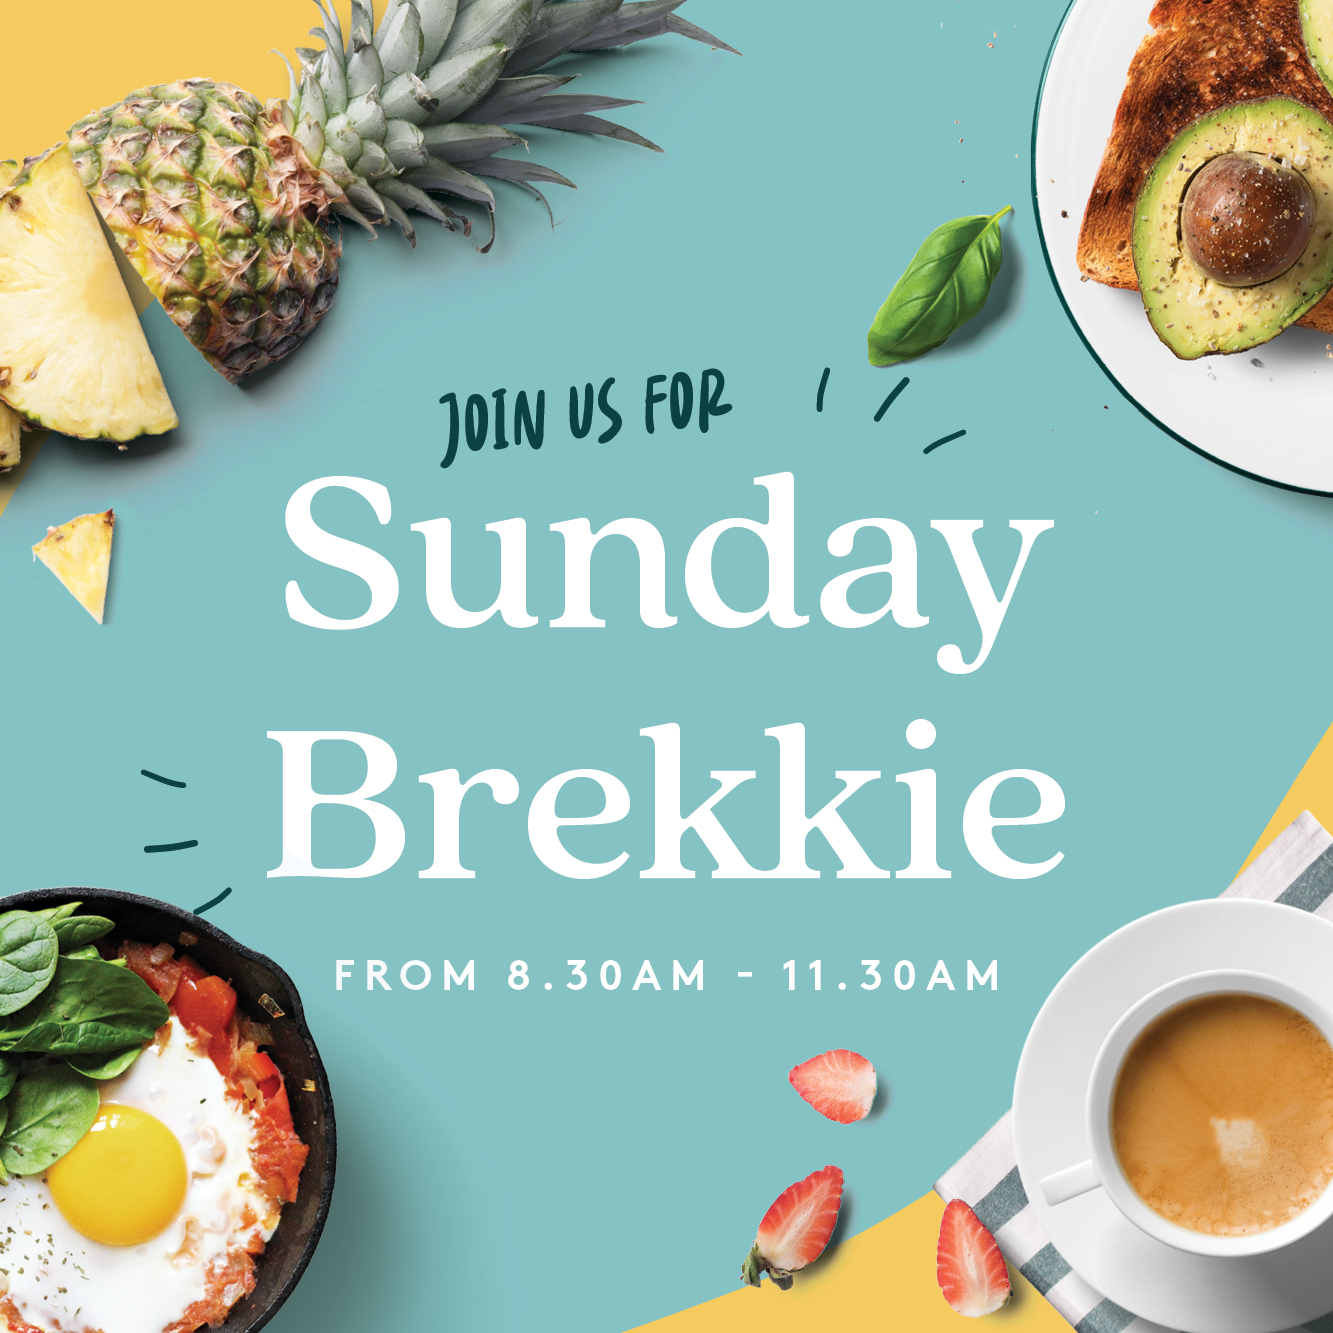 Sunday breakfast is back at Forestville RSLClub! 8.30am - 11.30am every Sunday.